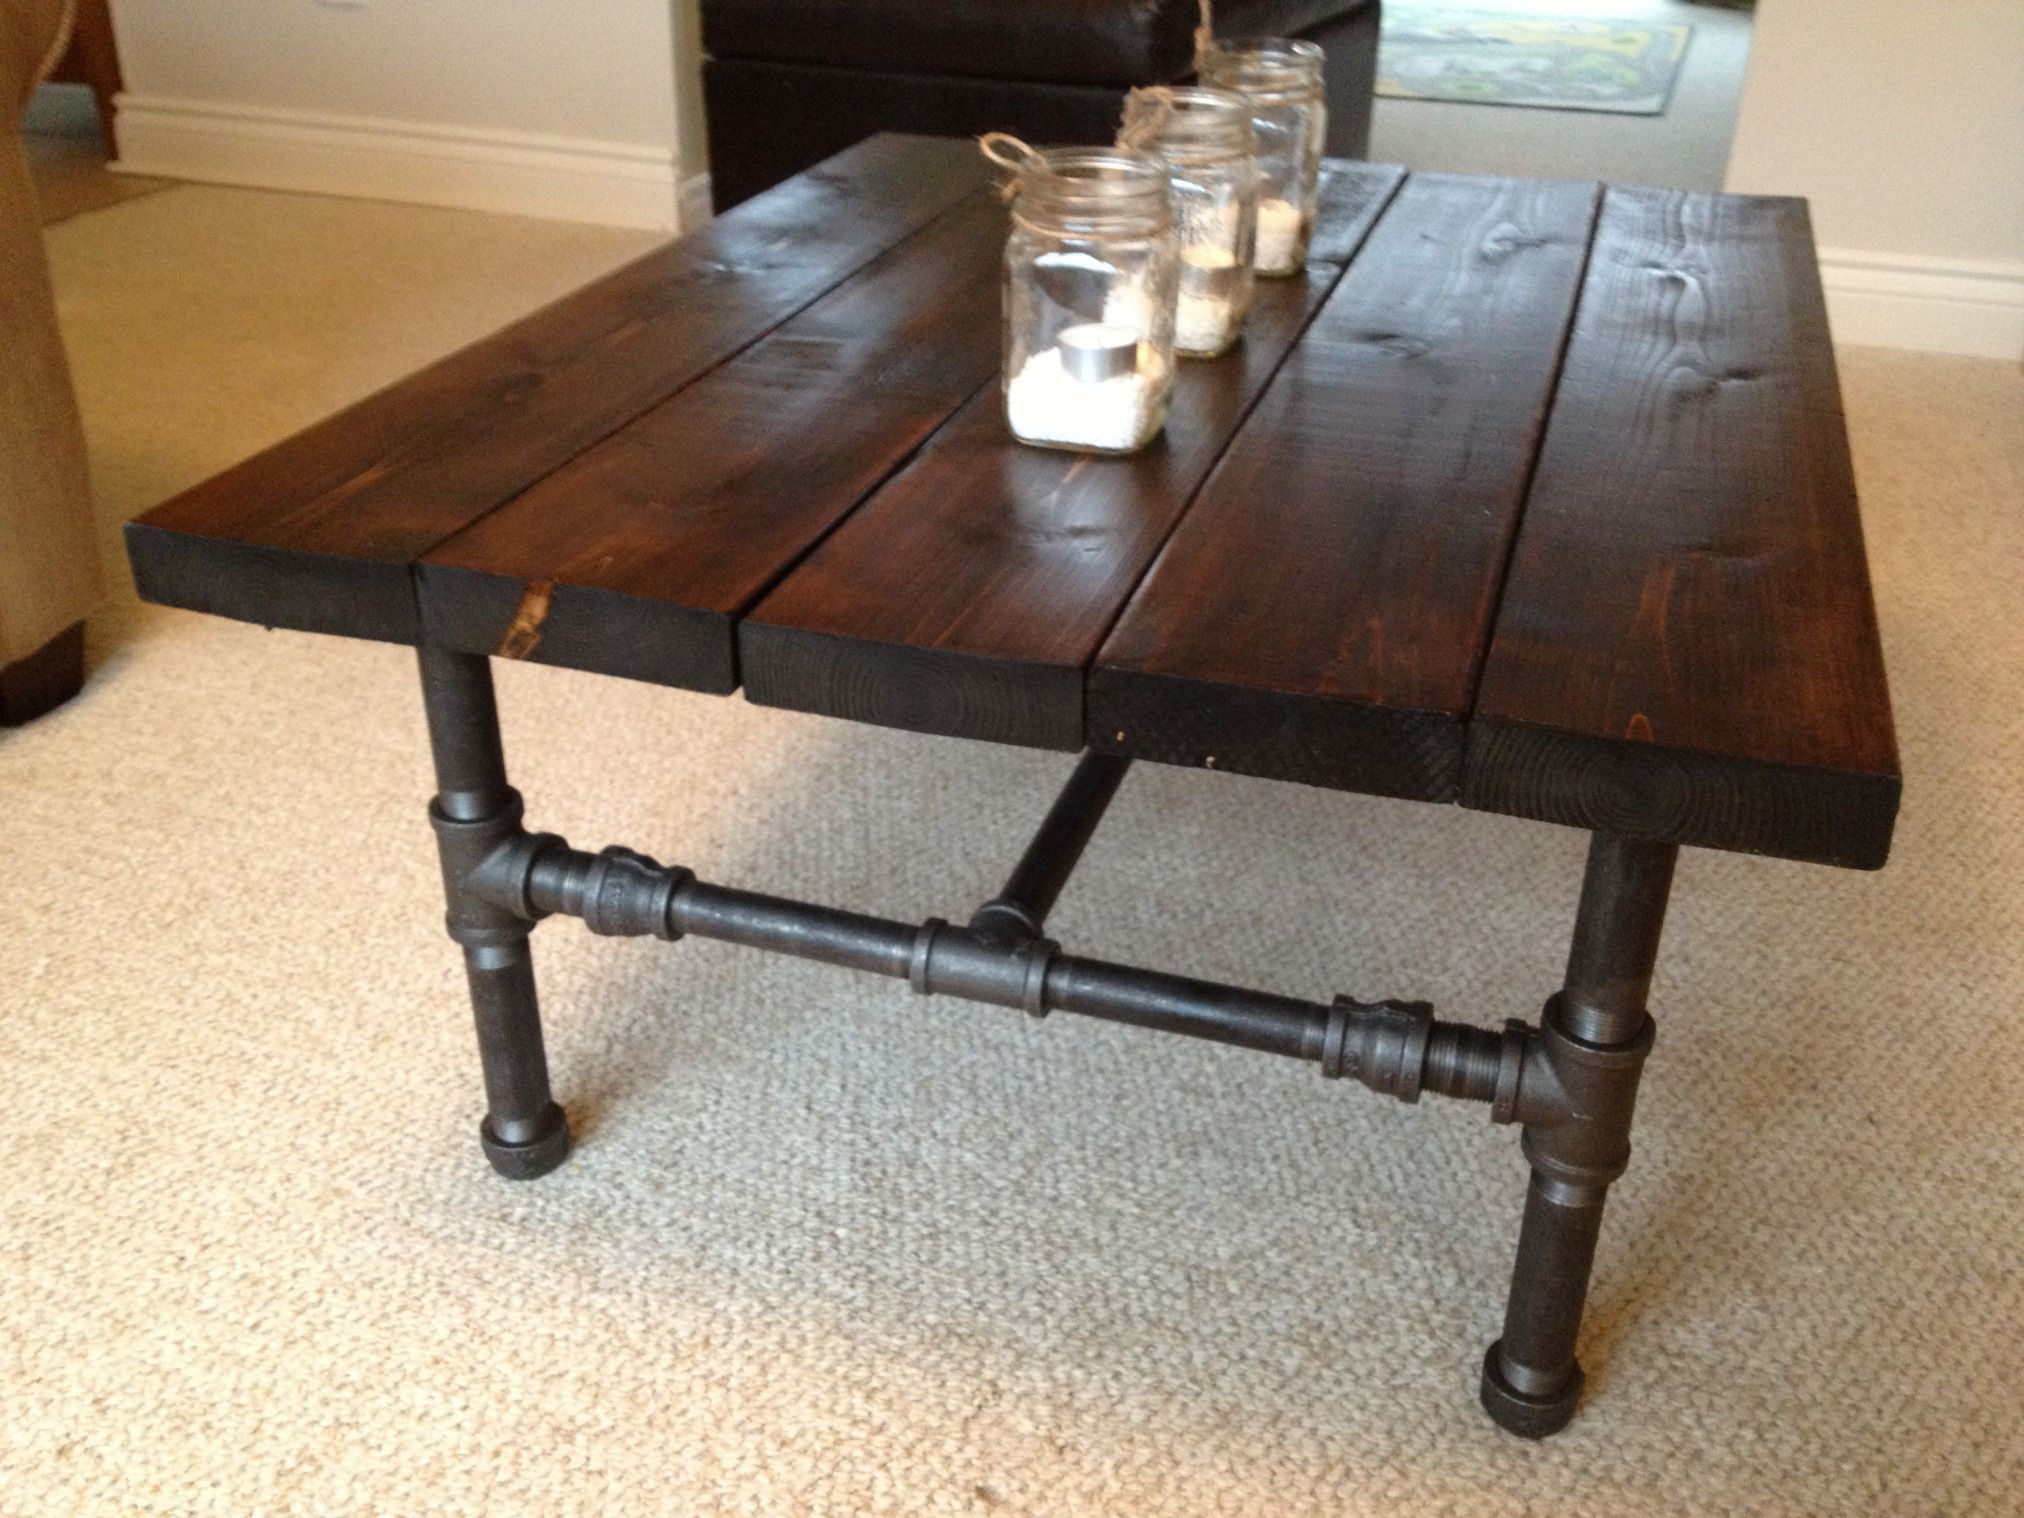 Amazing 20 Small Industrial Coffee Table   Home Office Desk Furniture Check More At  Http:/